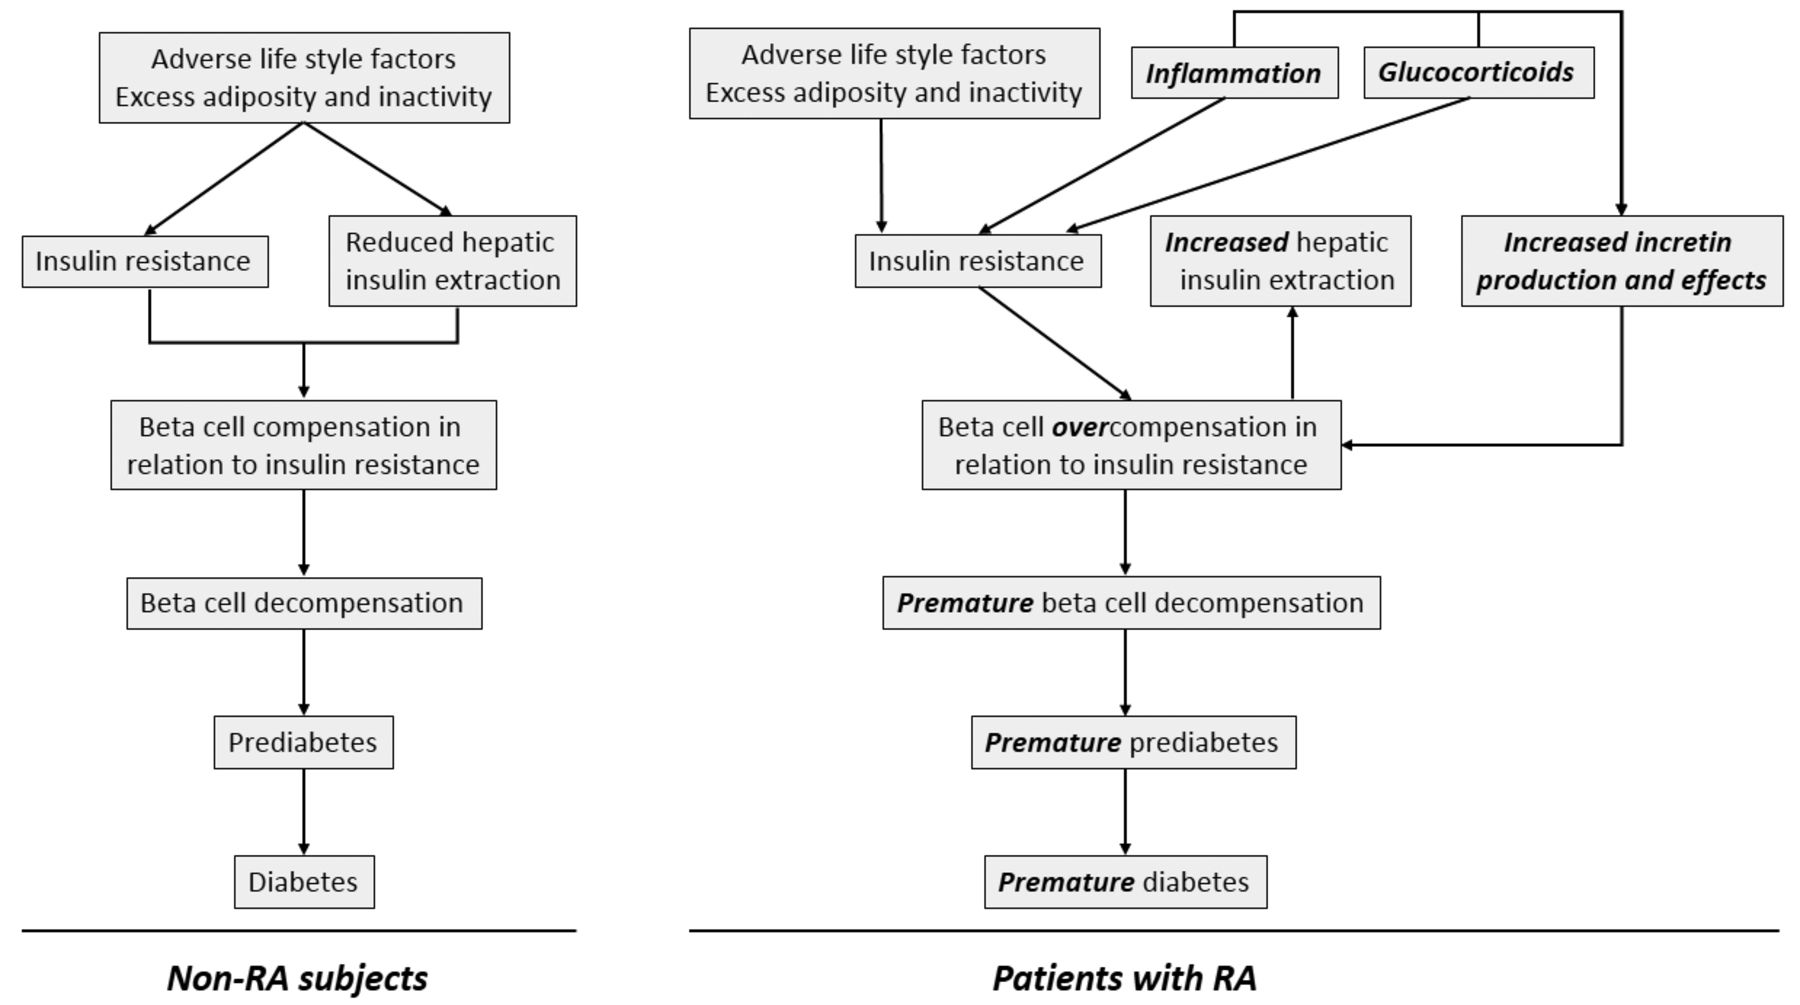 Diabetogenesis in Rheumatoid Arthritis: Do Inflammation and